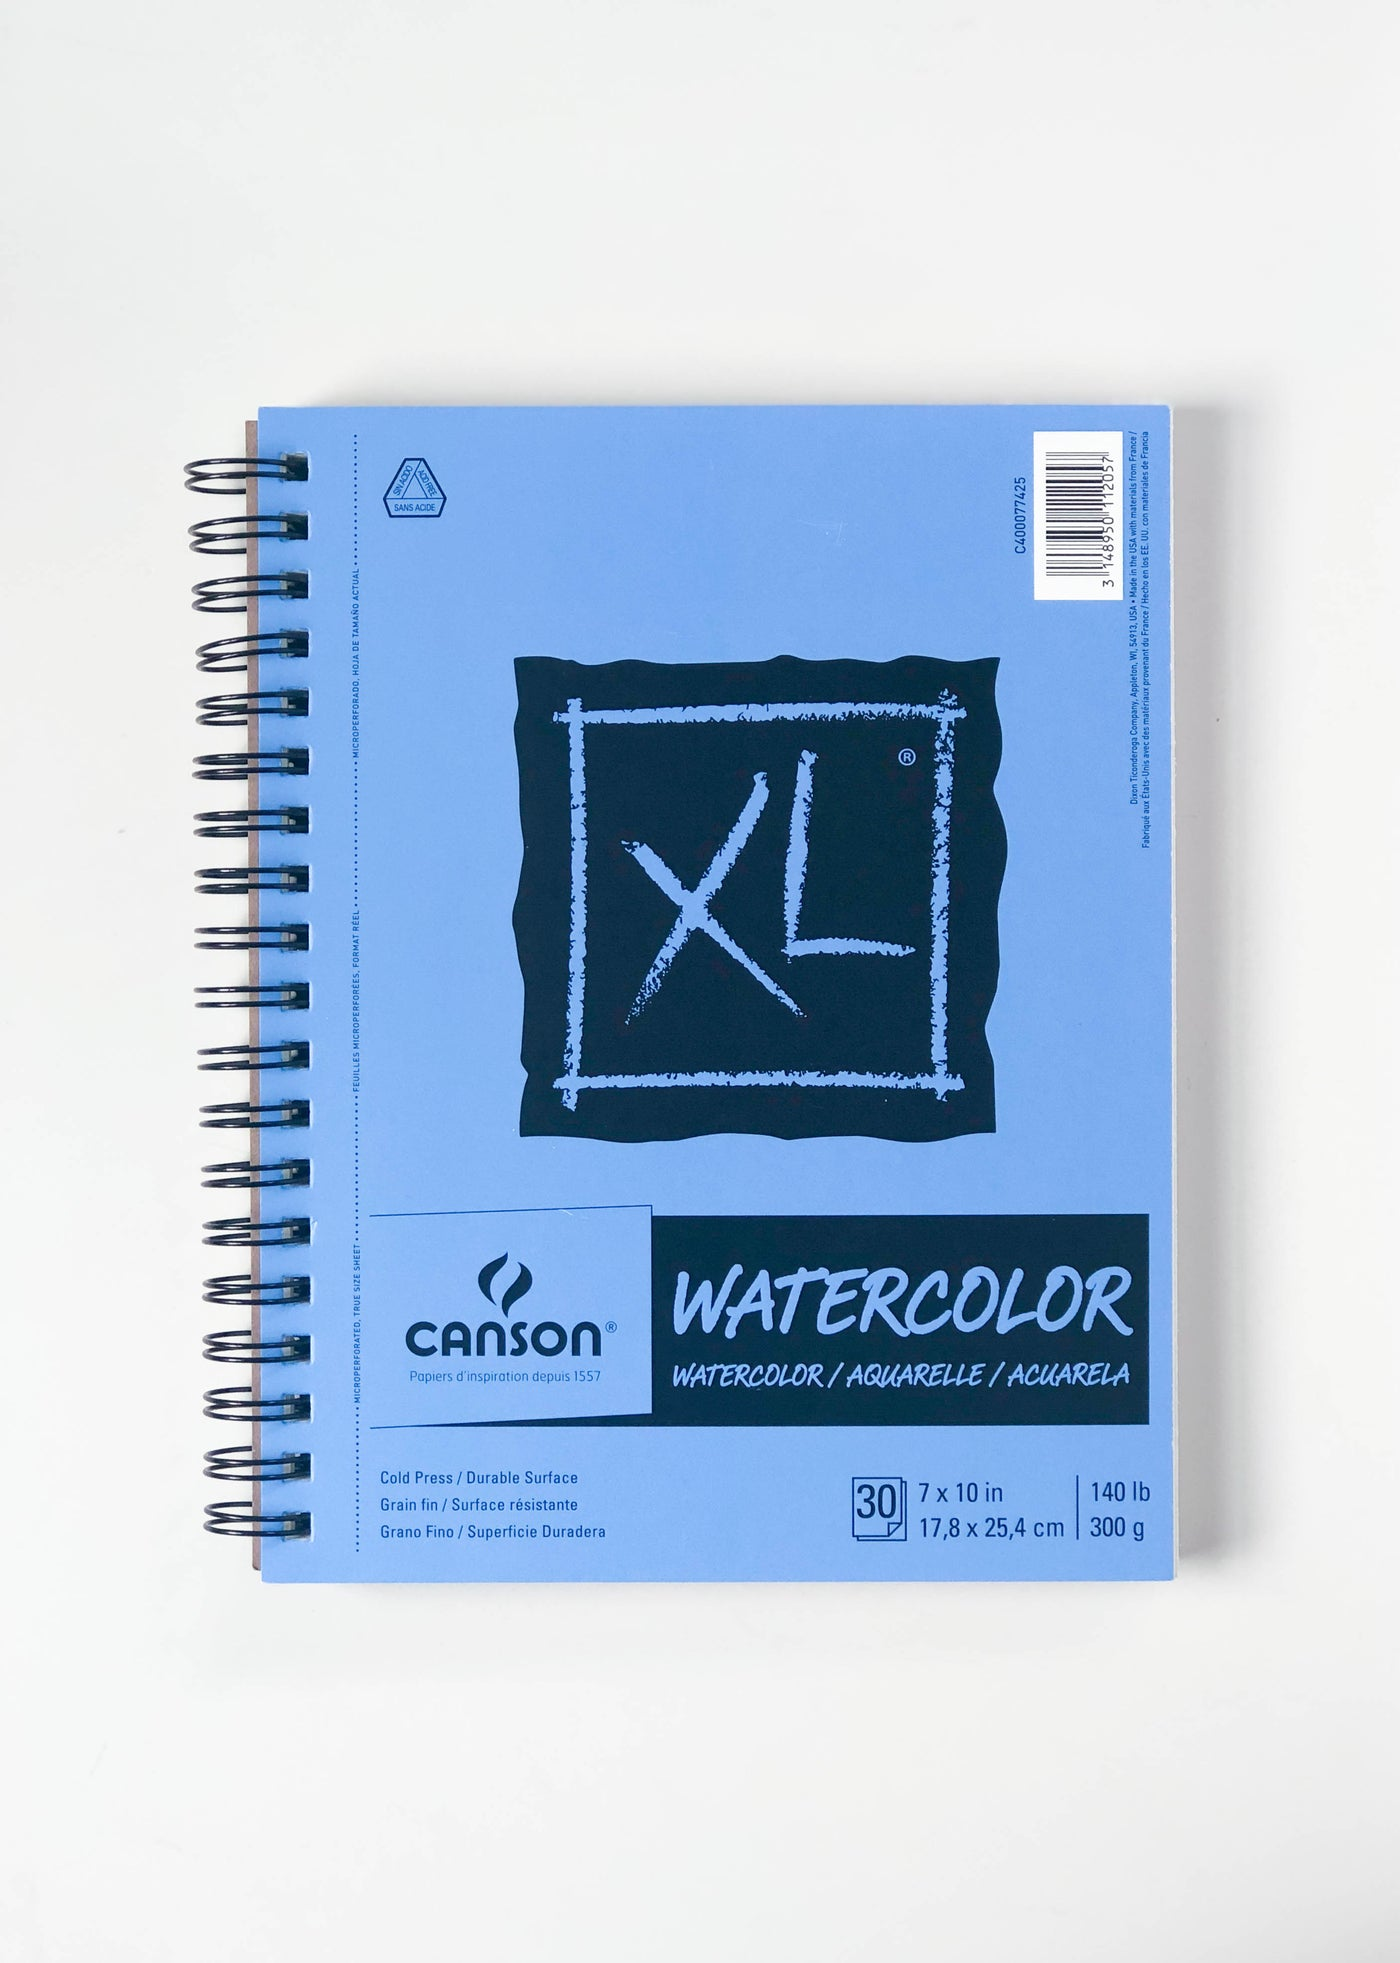 Canson XL Watercolor Paper | 140lb, Cold Press